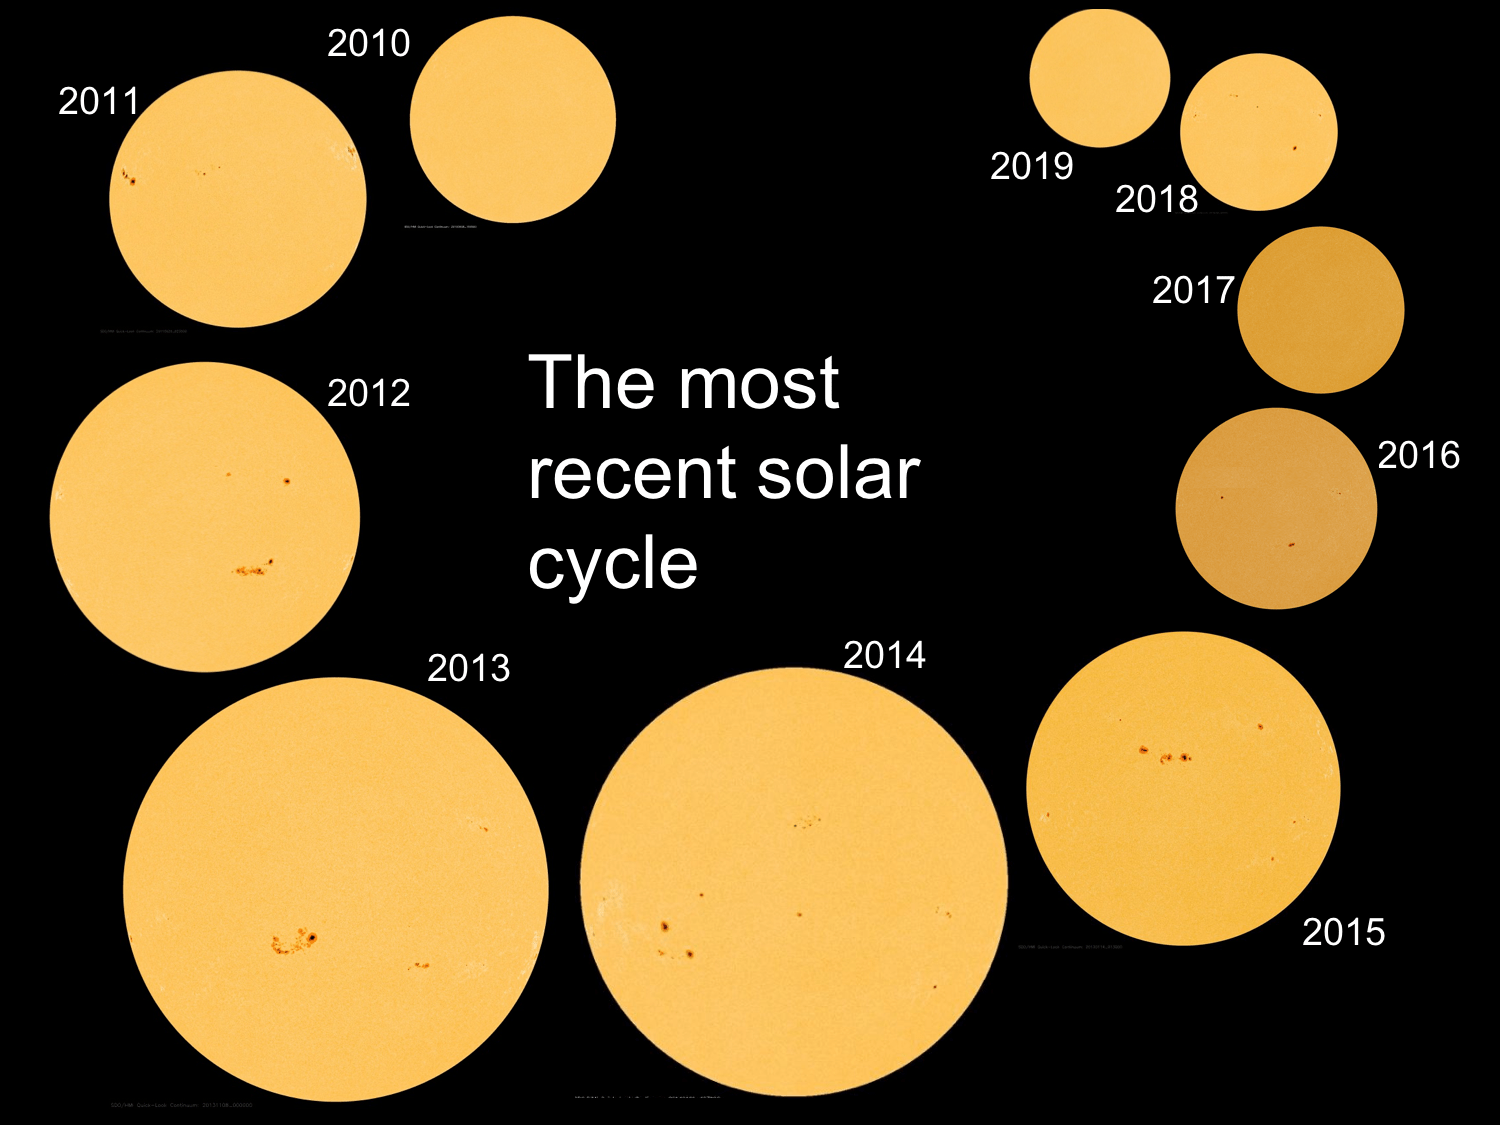 Ten different images of the sun are shown, each representative of a different year during the most recent solar cycle. The less active years have a sun which is much more monochrome and with few spots compared to the solar maxima years, which have clear sunspot groups on the surface.